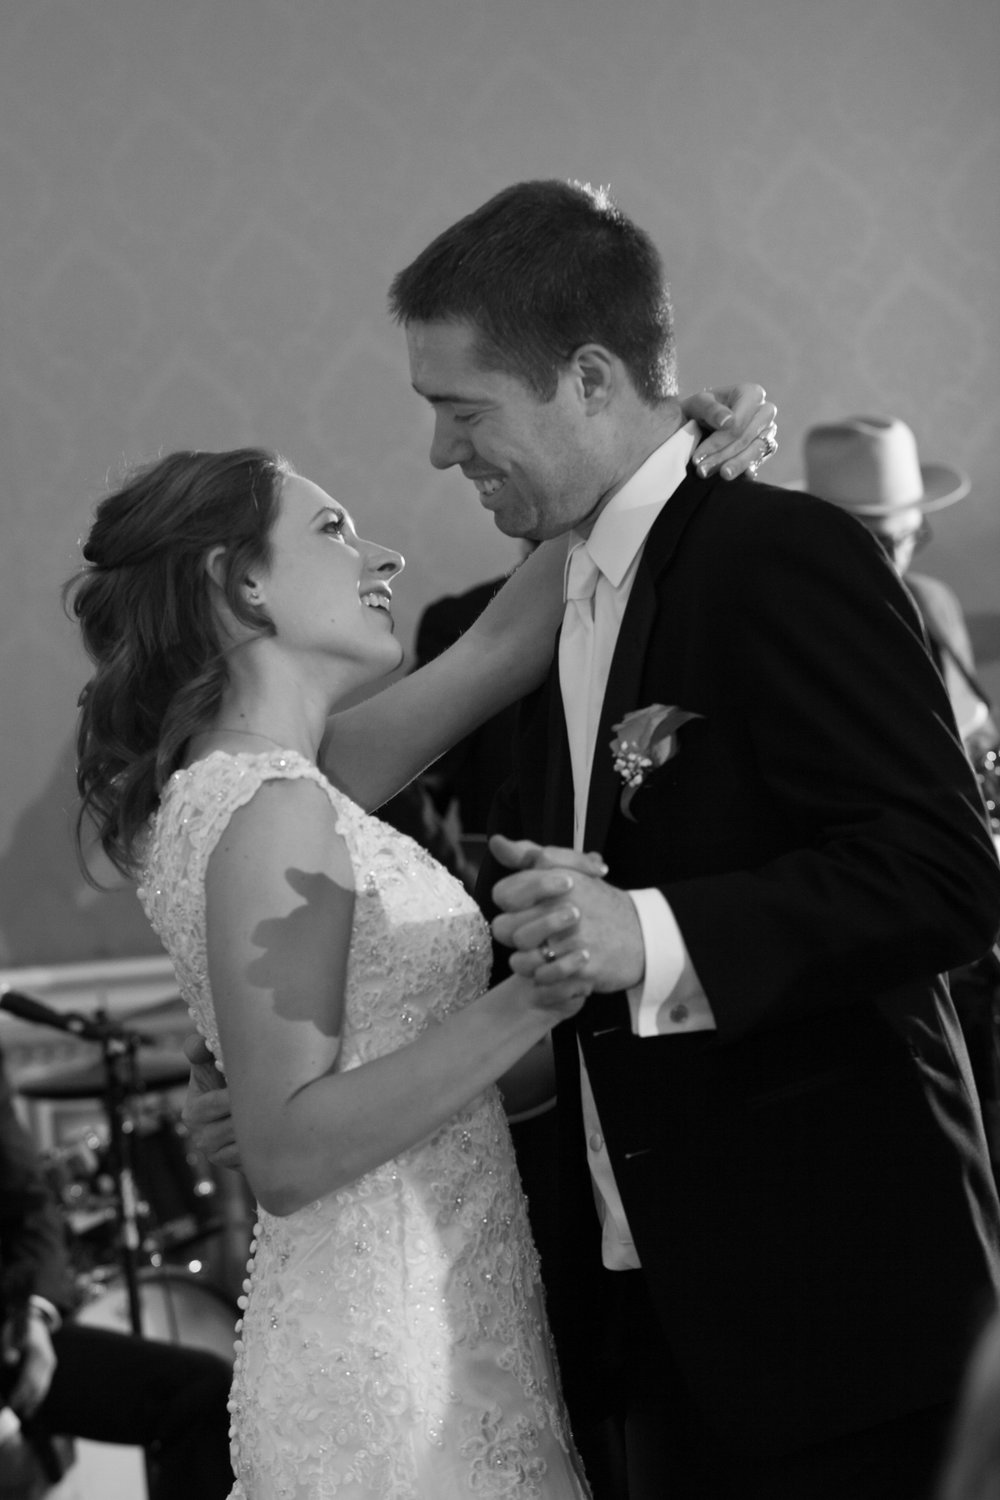 They have such a great connection.    They danced to Rewind by Rascal Flats for their first dance.